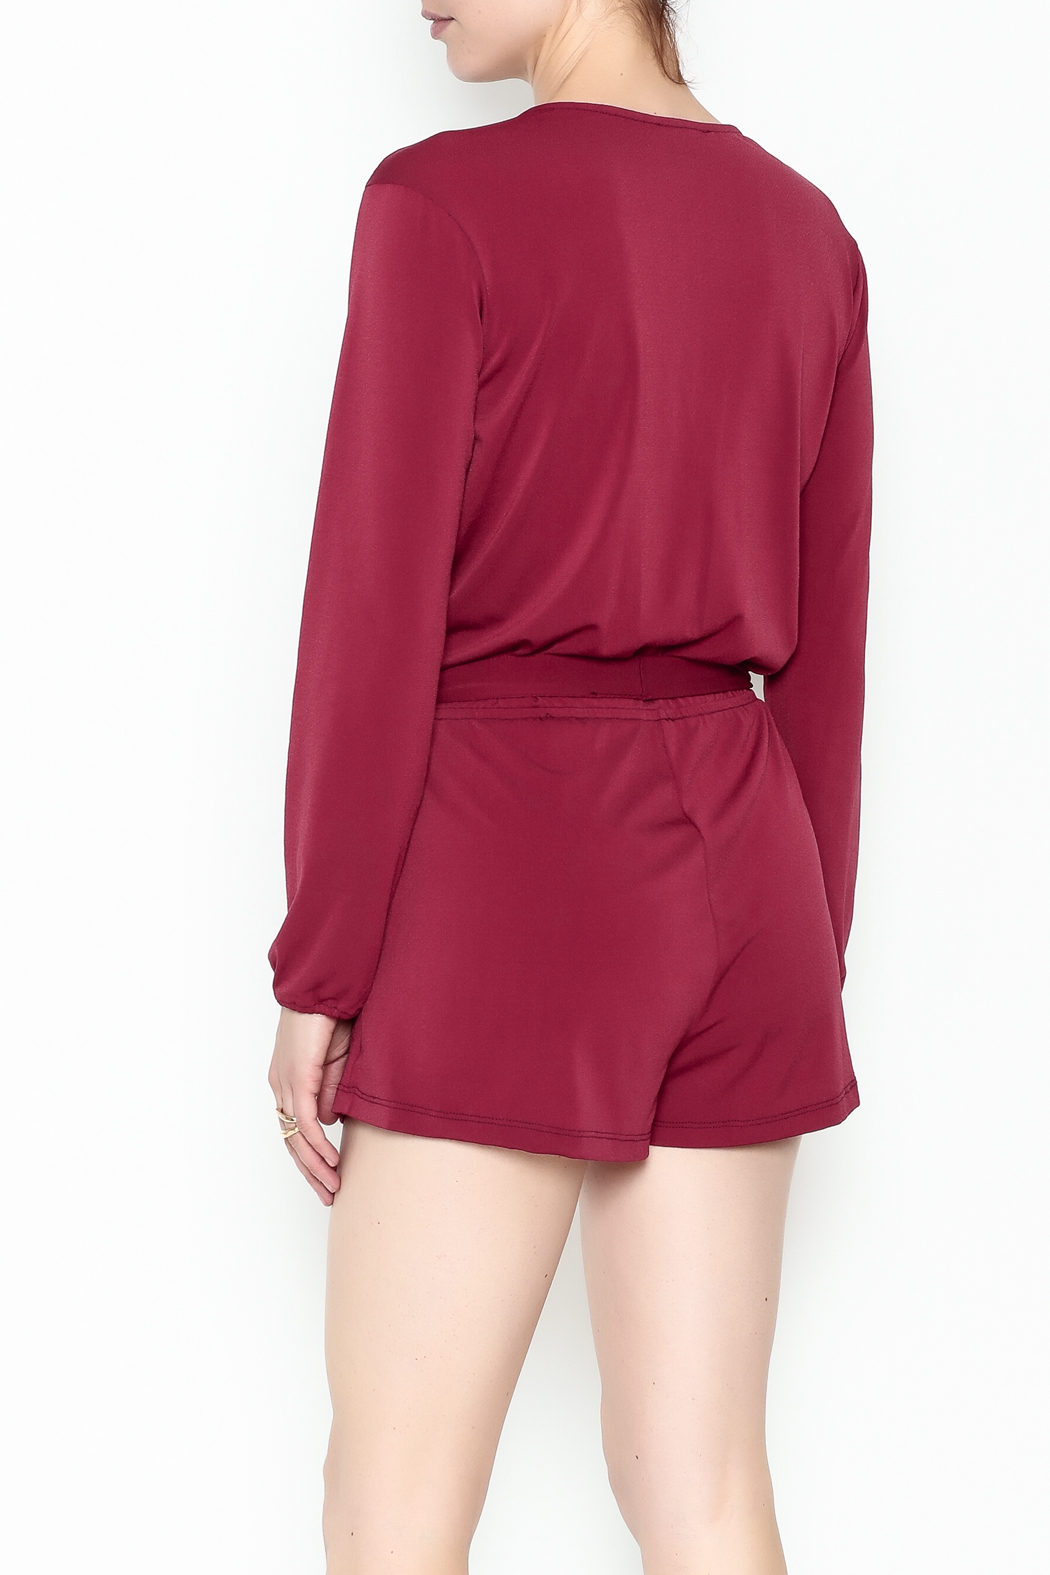 L'atiste Jasmine Red Romper - Back Cropped Image